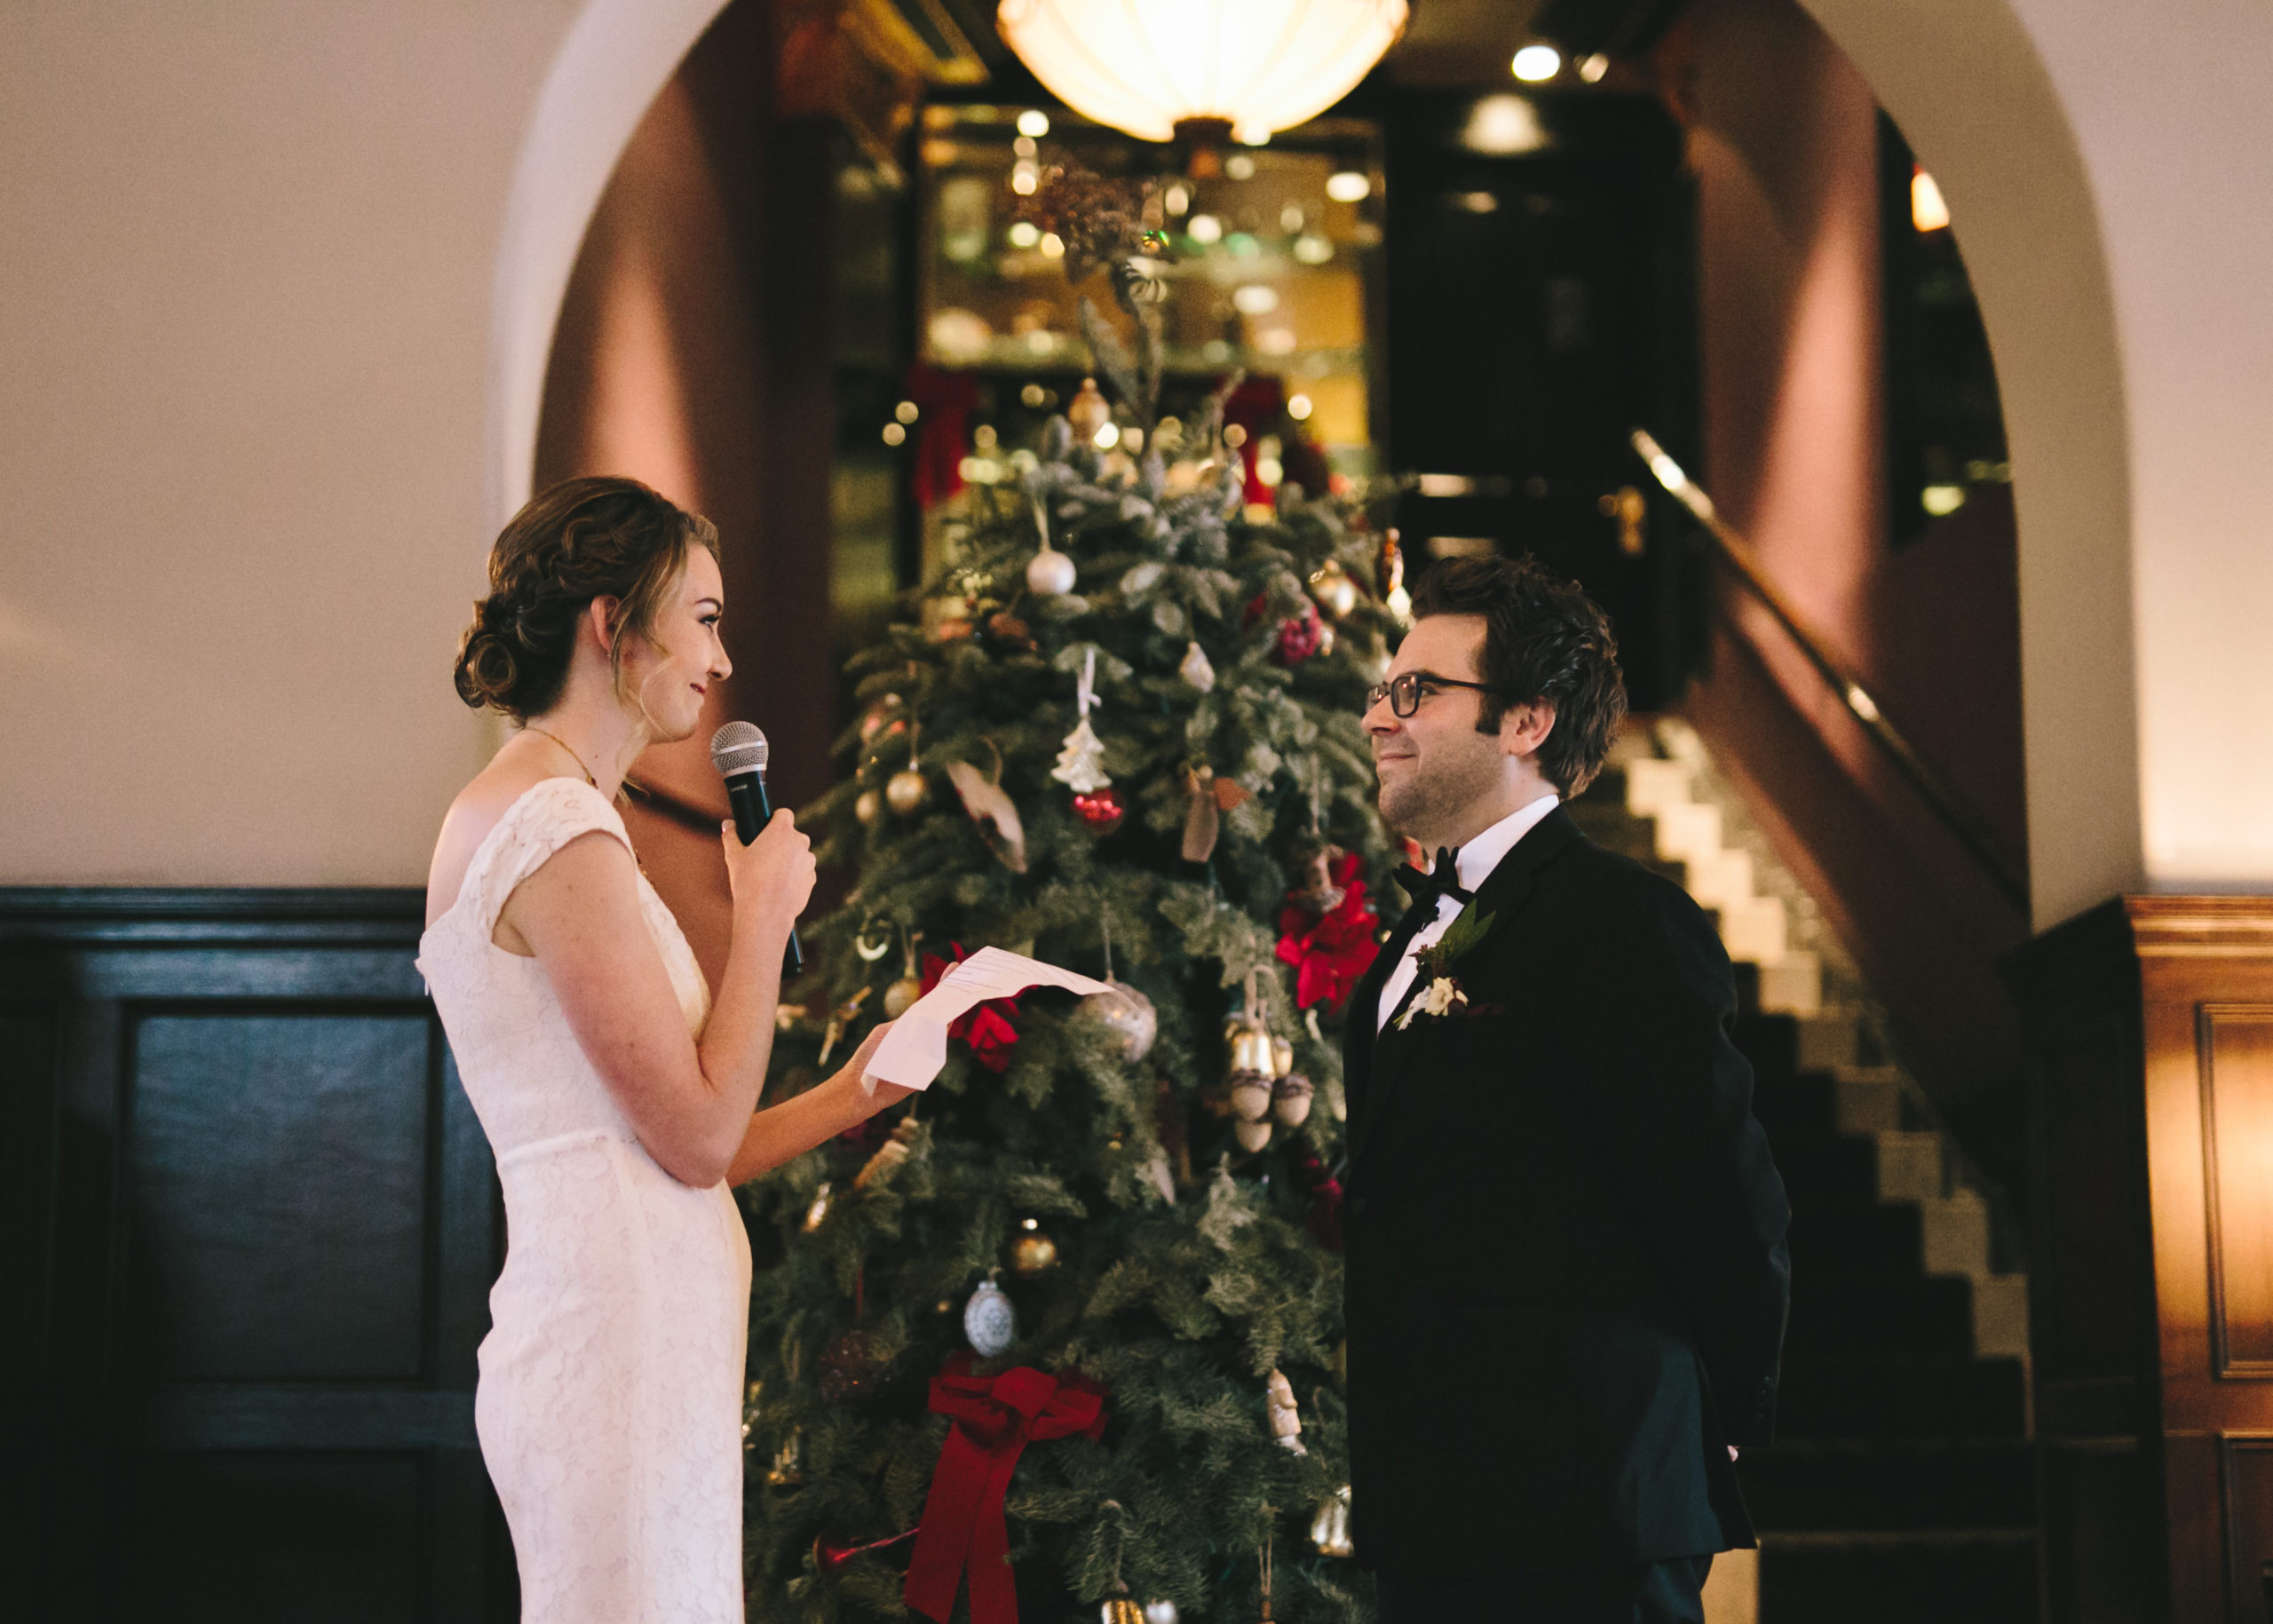 Bride reads vows to groom with Christmas tree in background